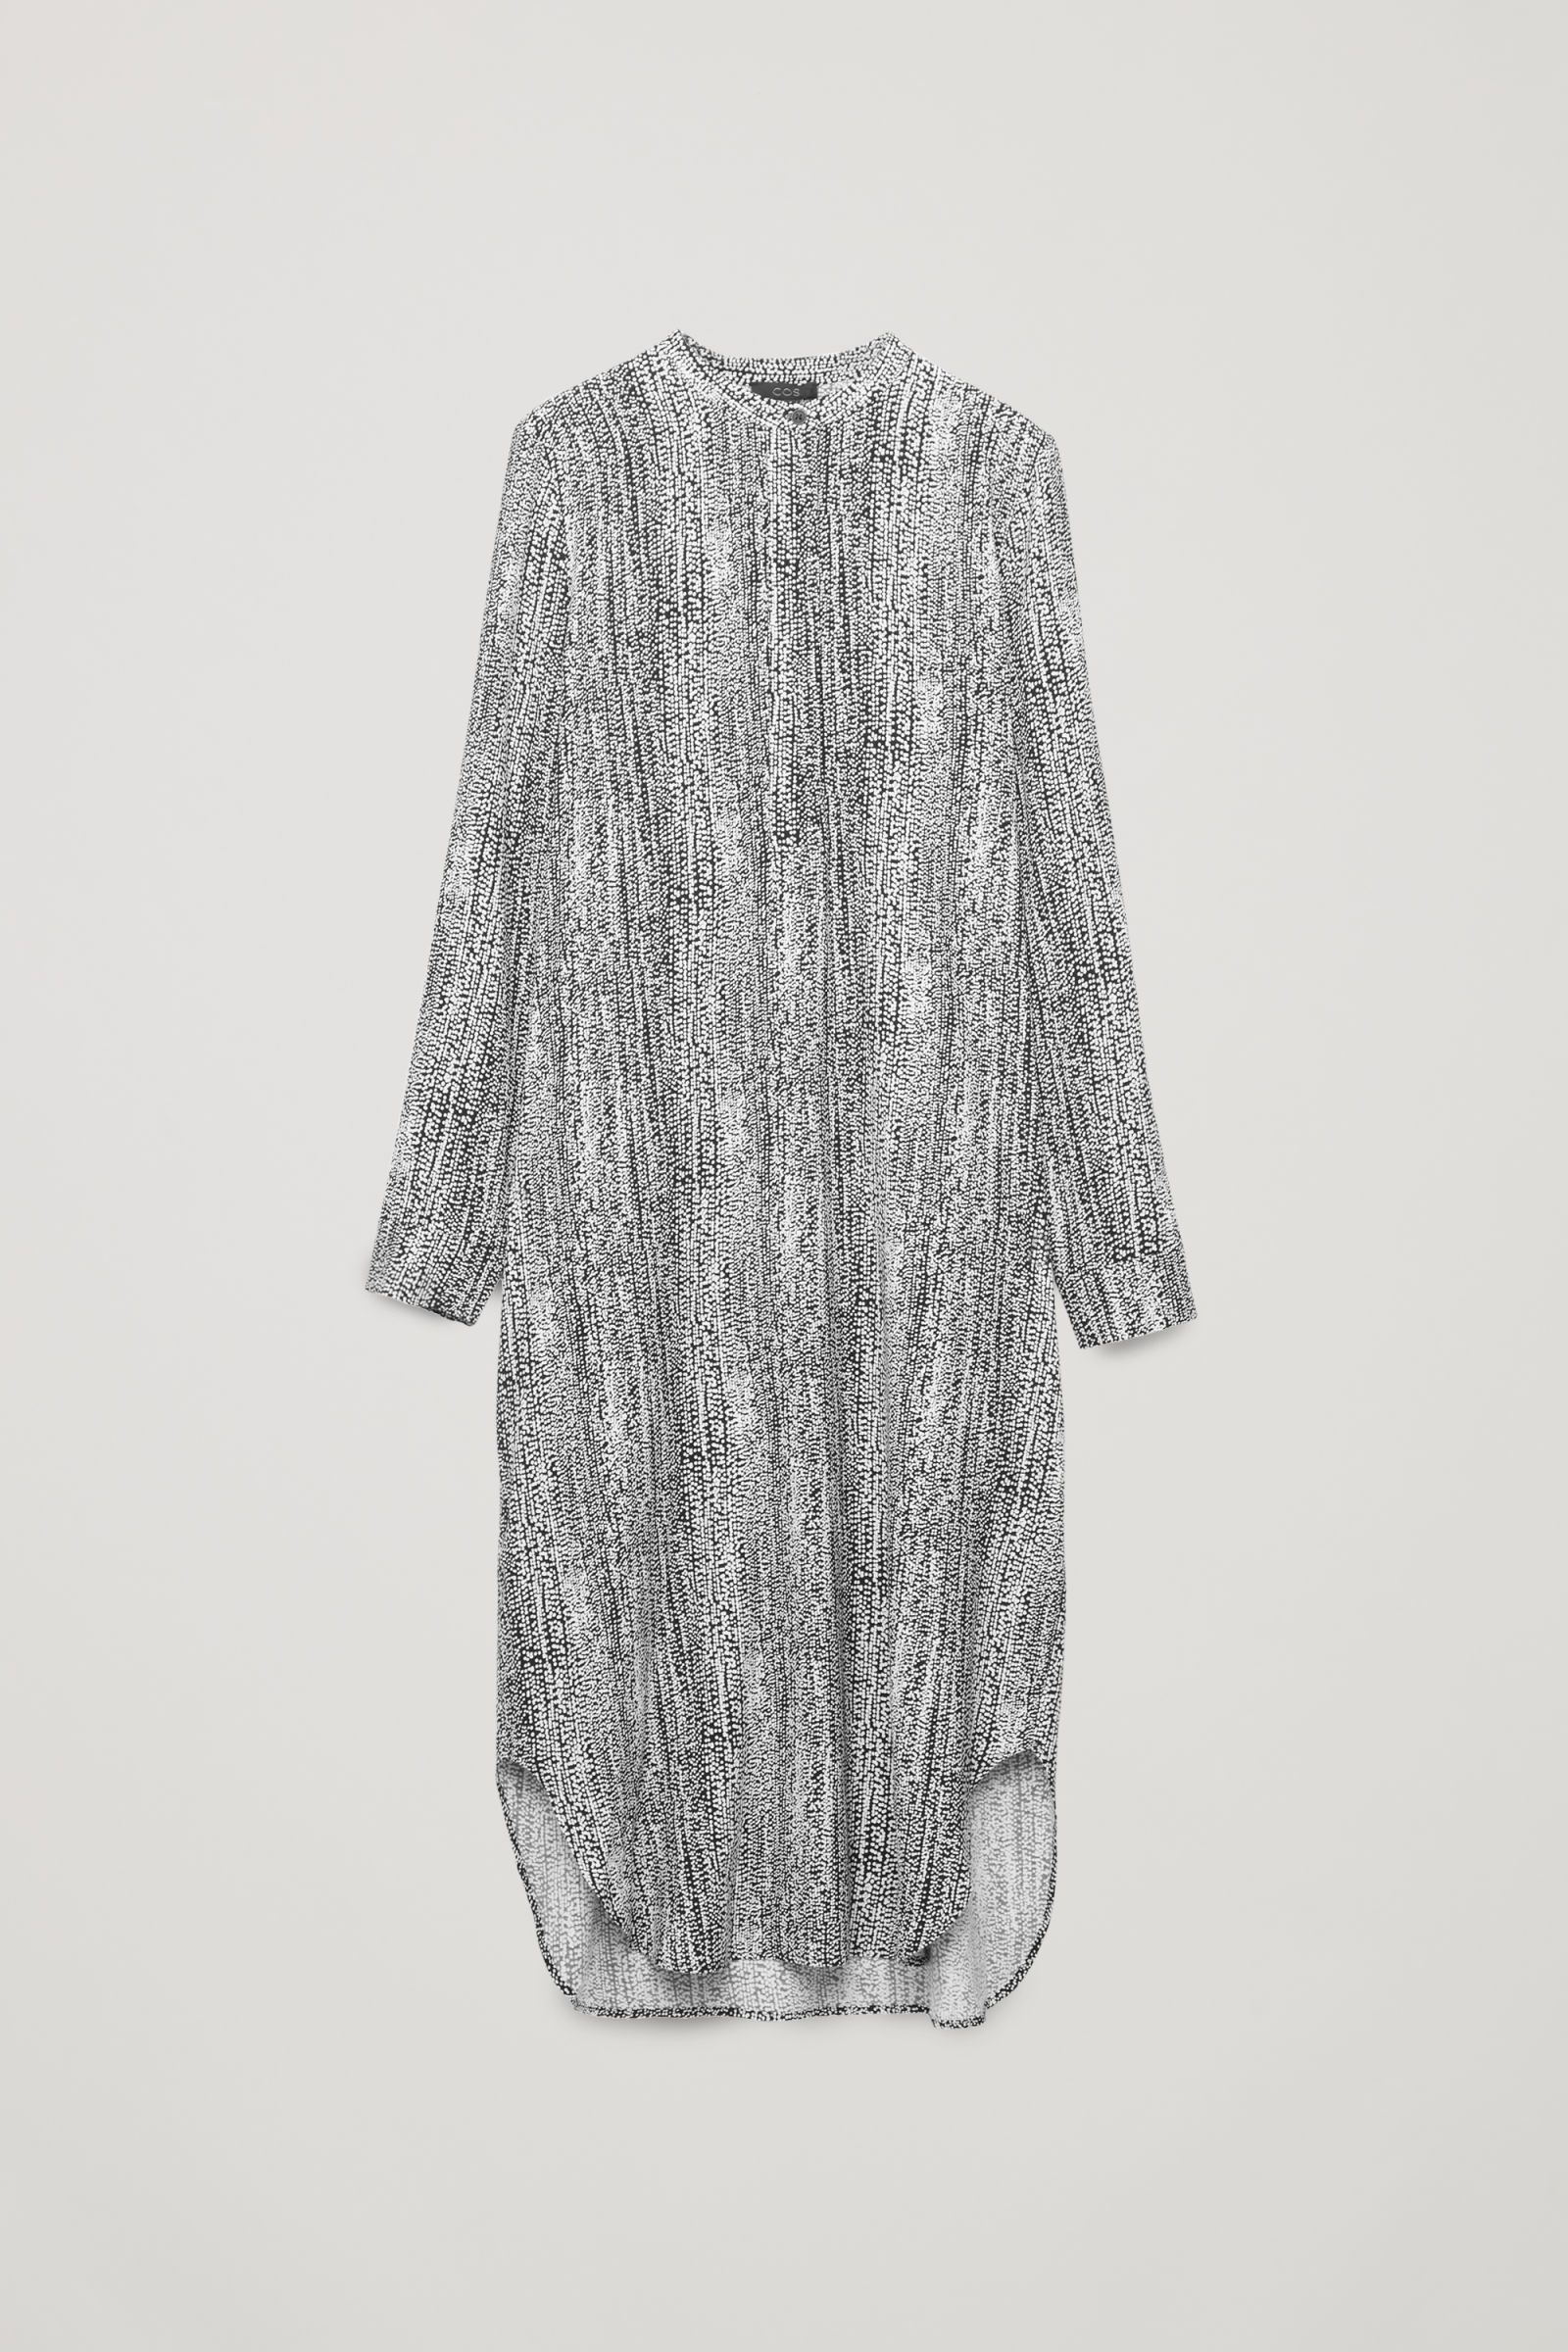 H&M Conscious Collection Patterned Silk Dress — Product